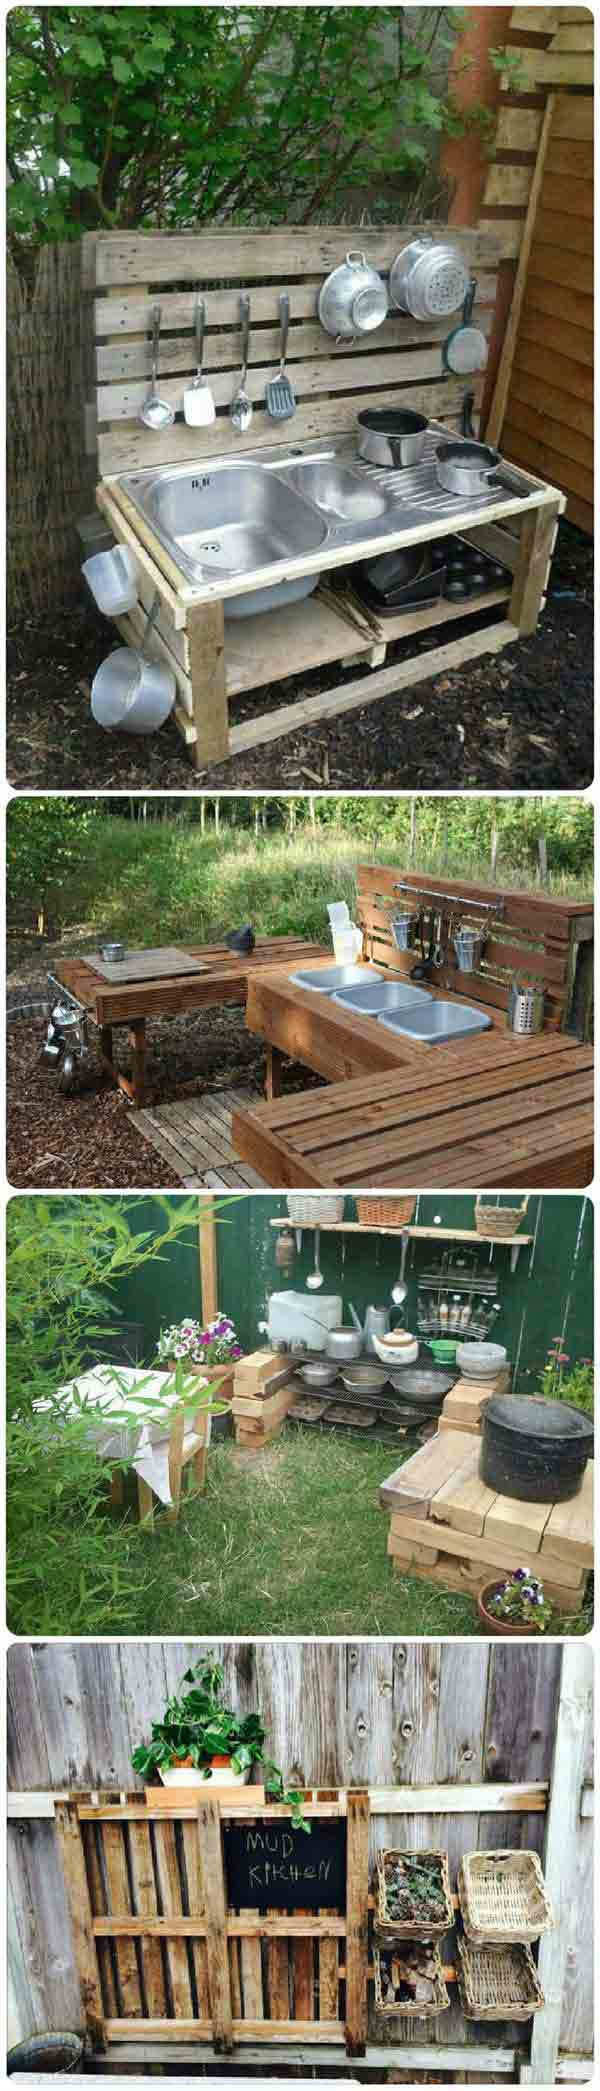 AD-DIY-Backyard-Projects-Kid-25